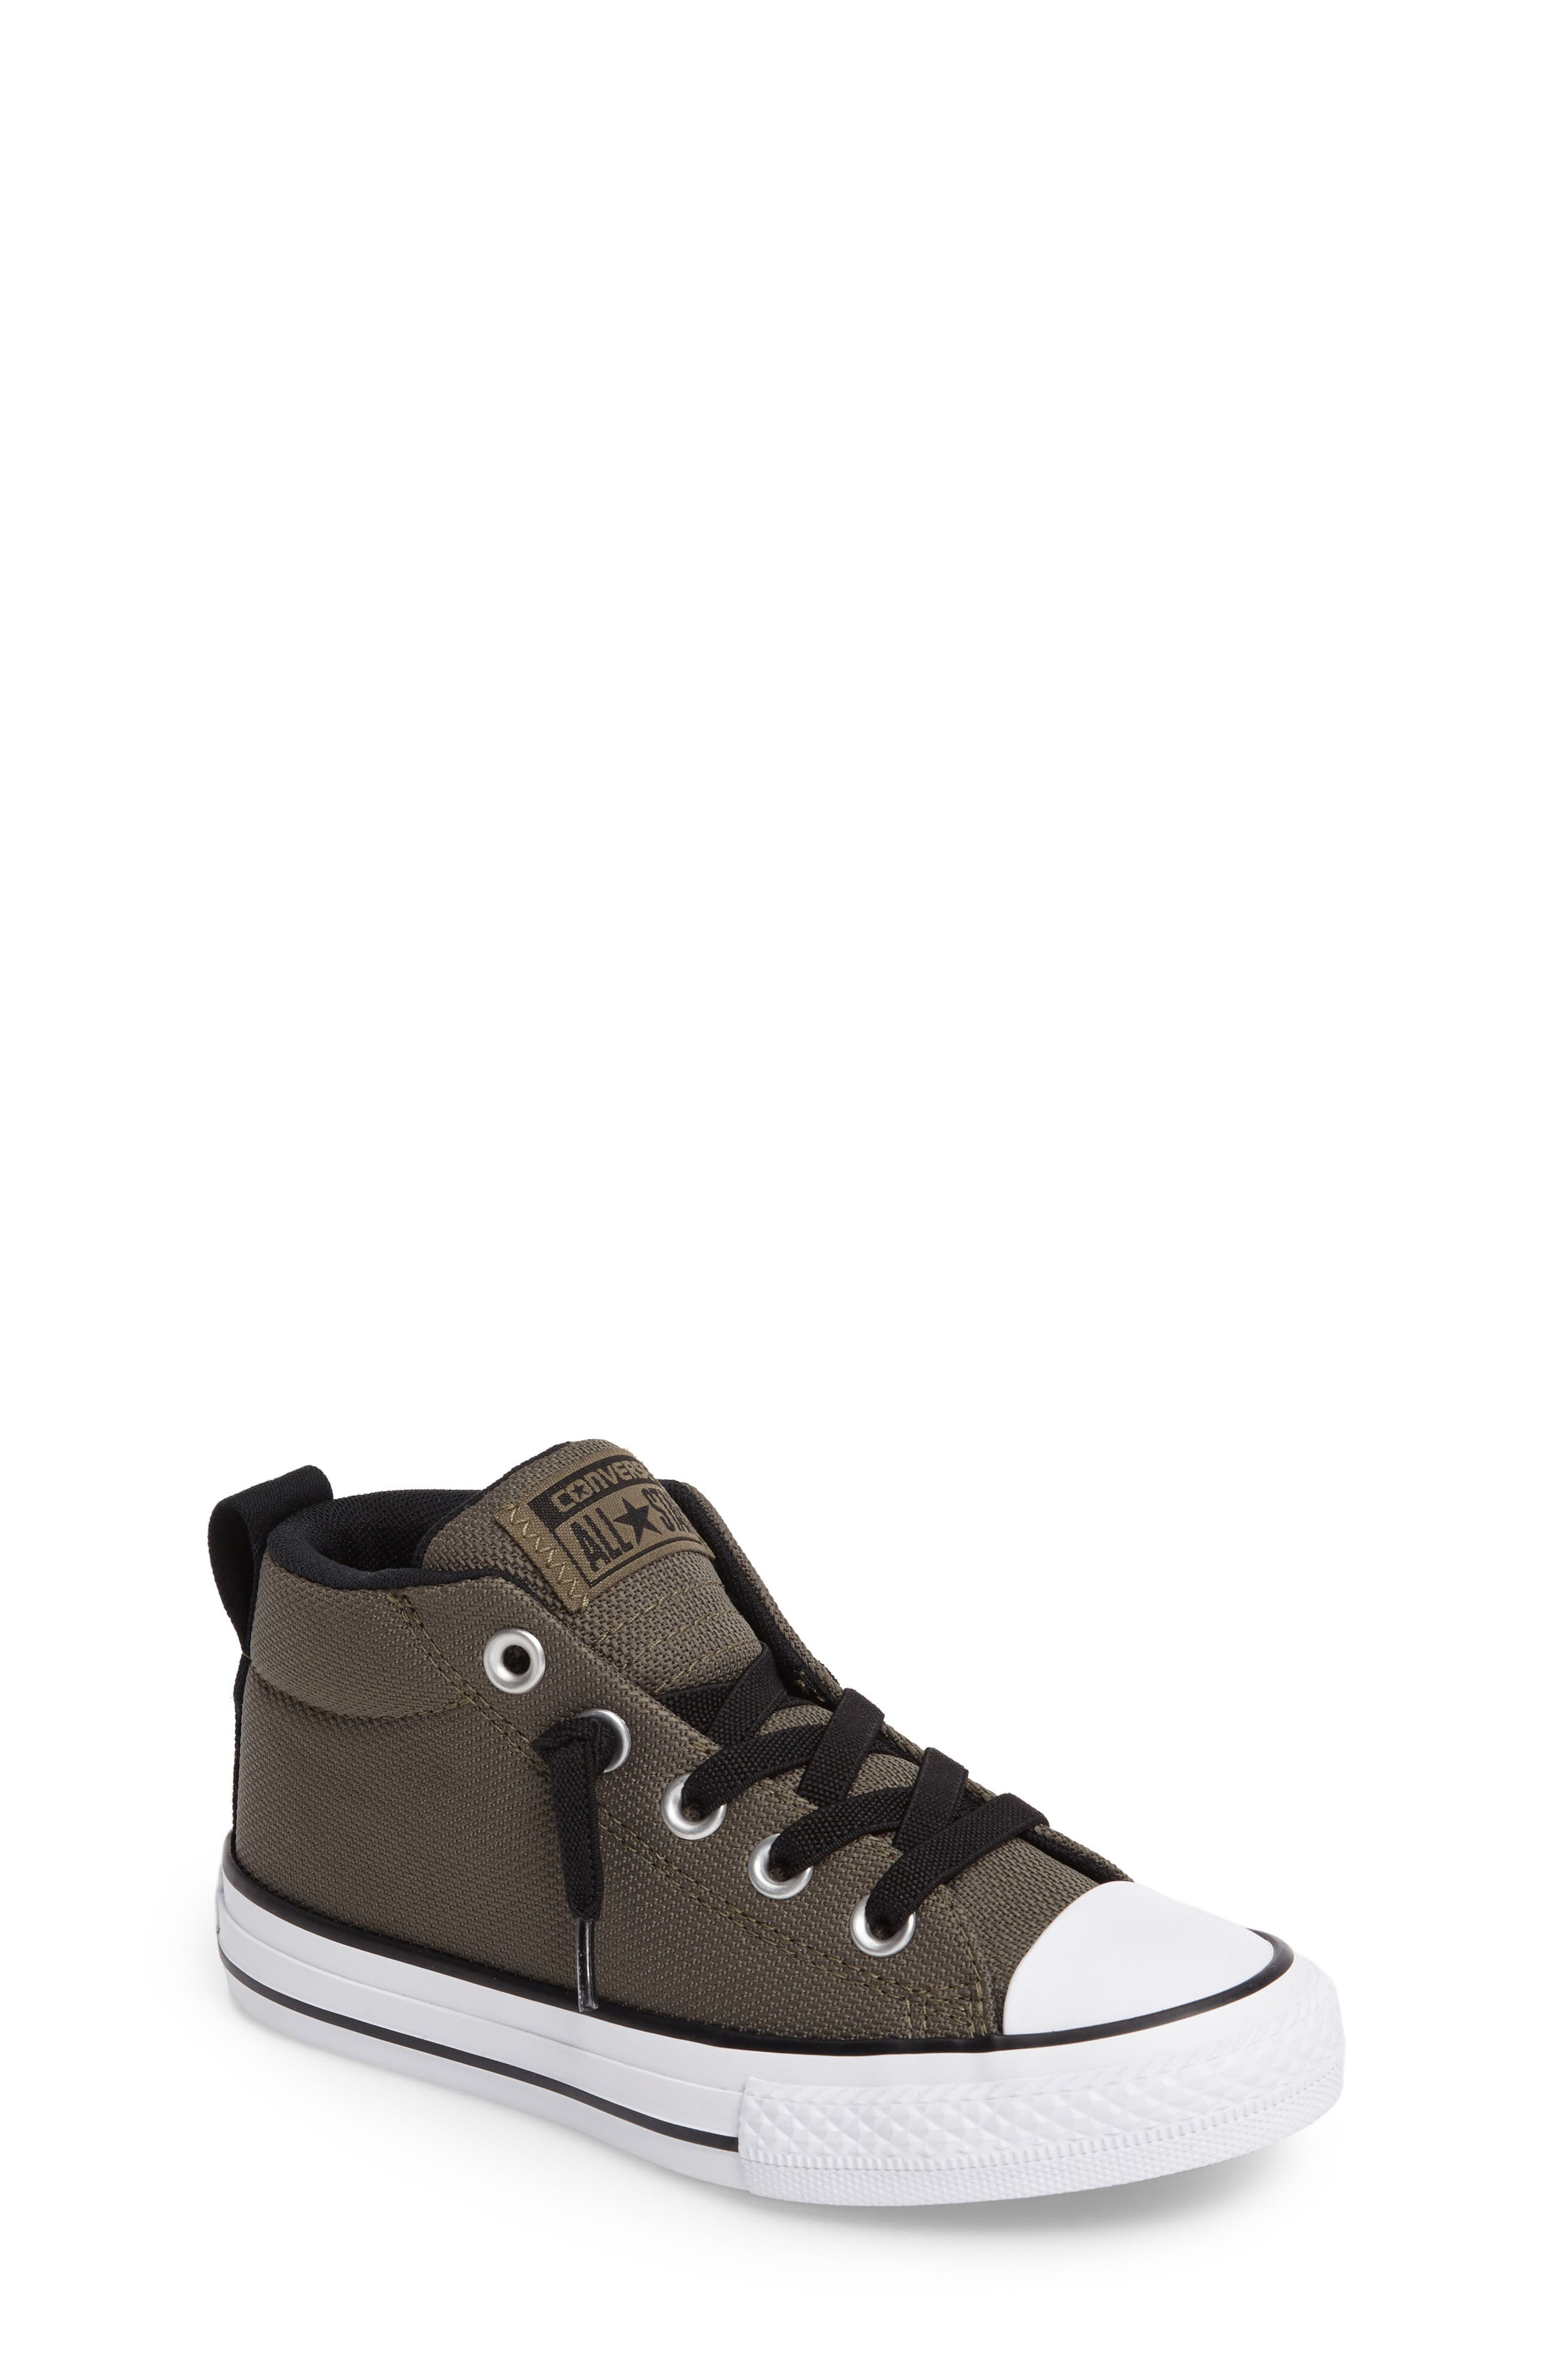 Chuck Taylor<sup>®</sup> All Star<sup>®</sup> Basket Weave Street Mid Sneaker,                         Main,                         color, 342